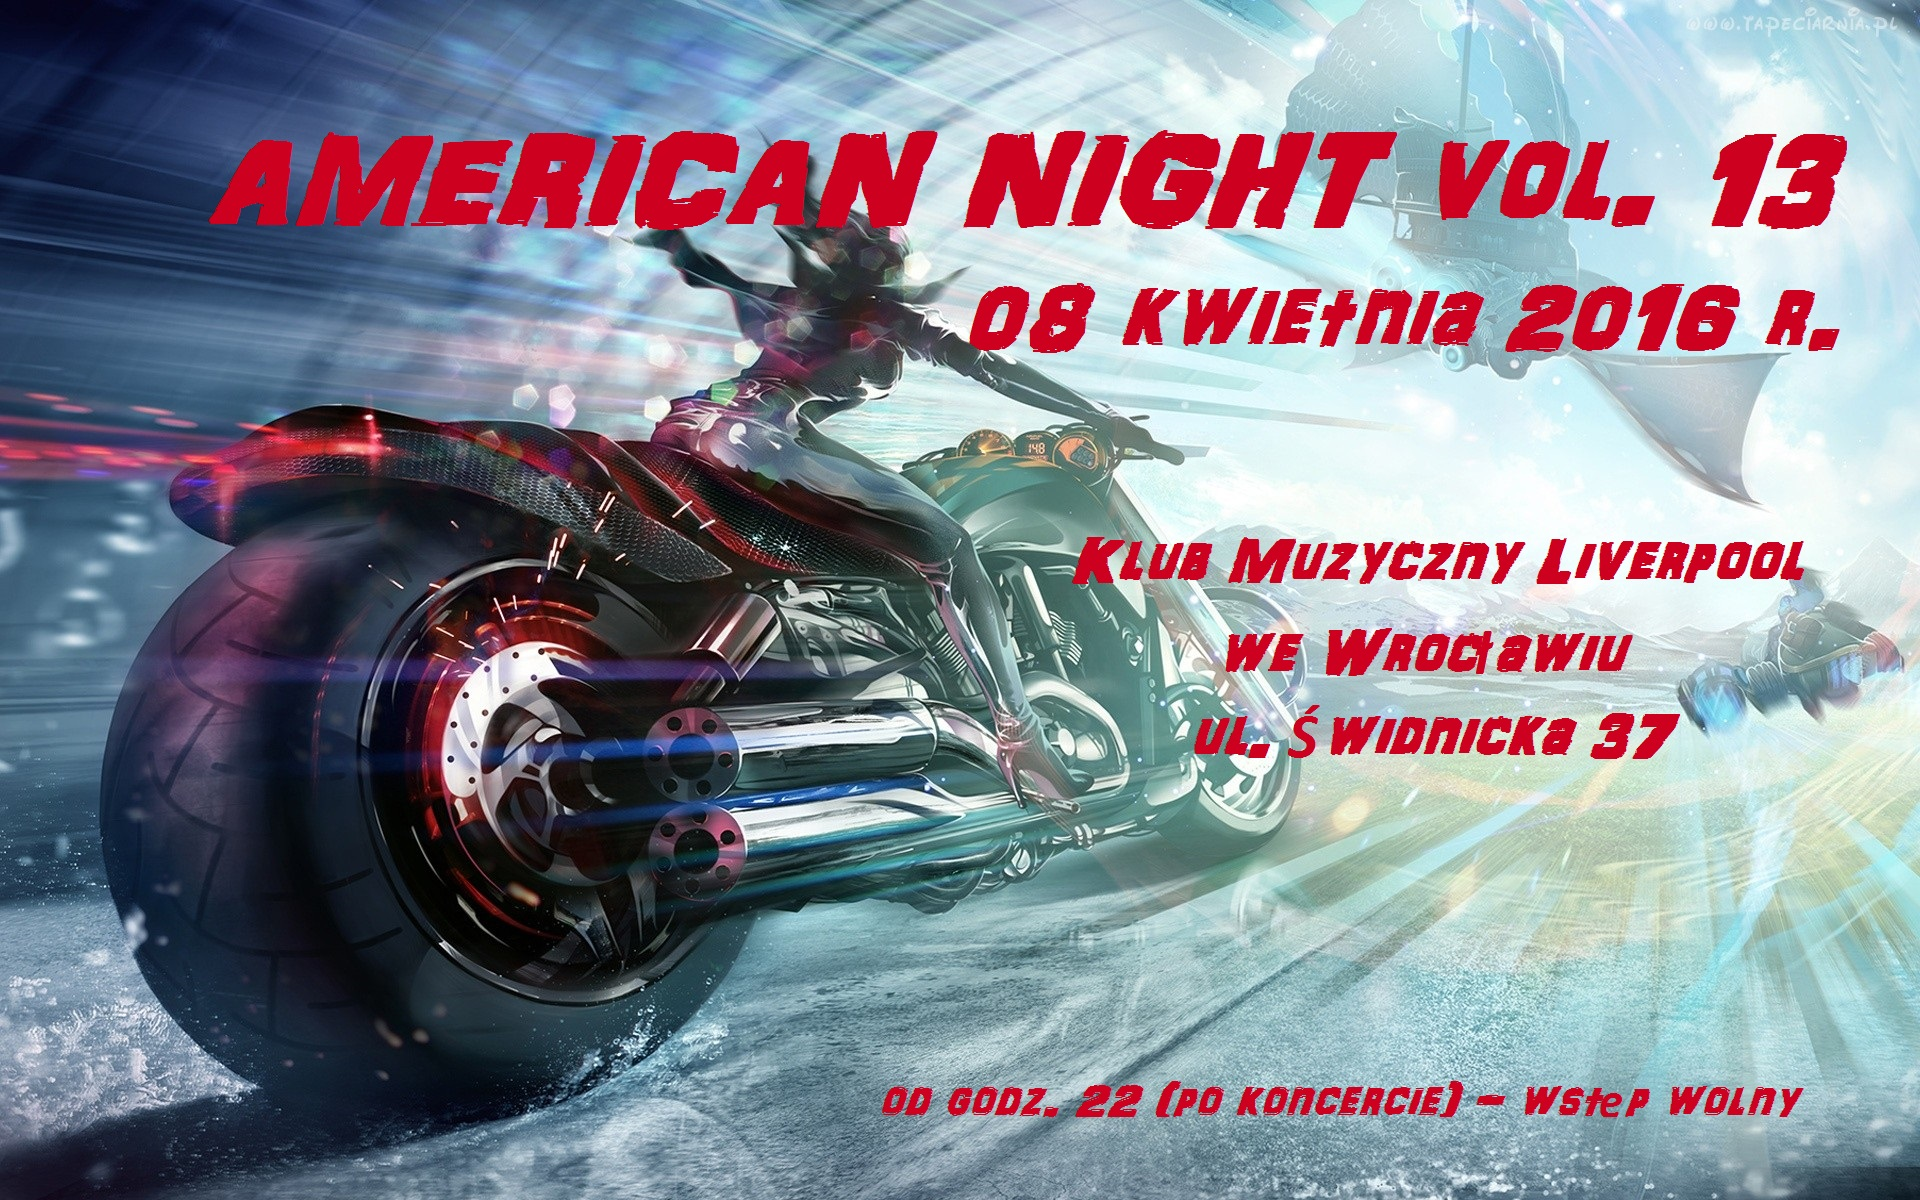 AMERICAN NIGHT vol. 13